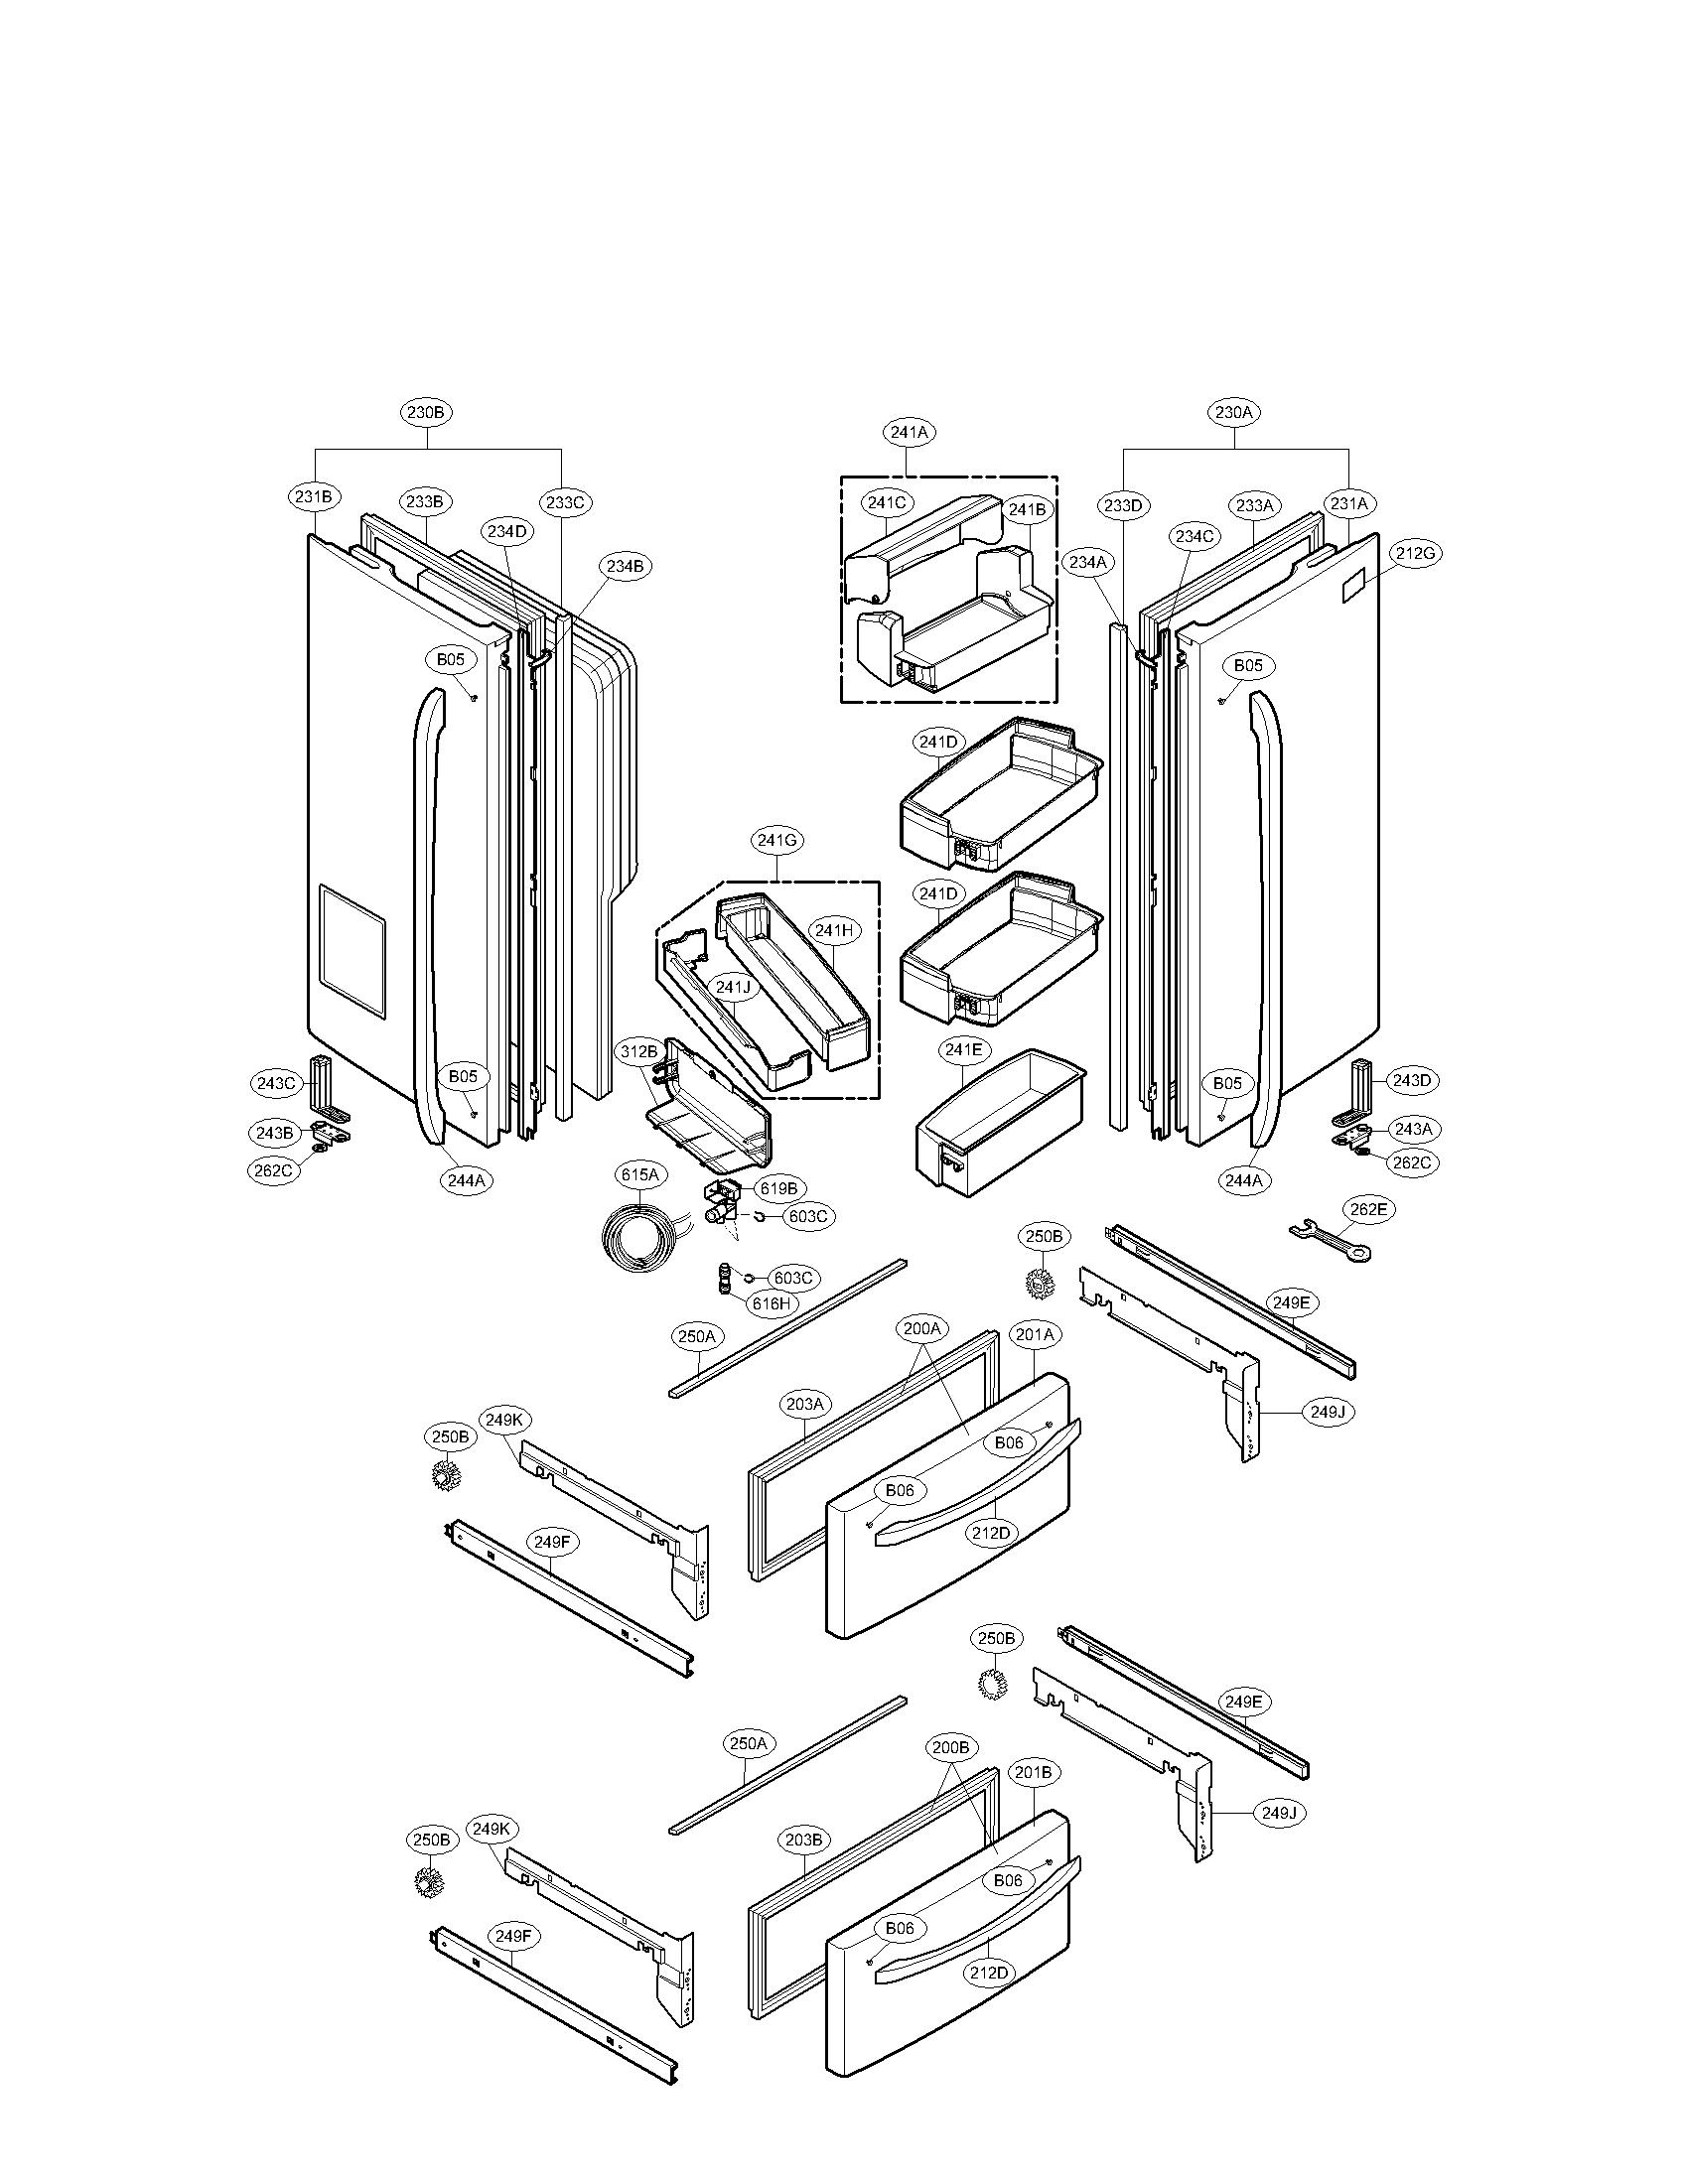 DOOR PARTS Diagram & Parts List for Model lmx21984st LG